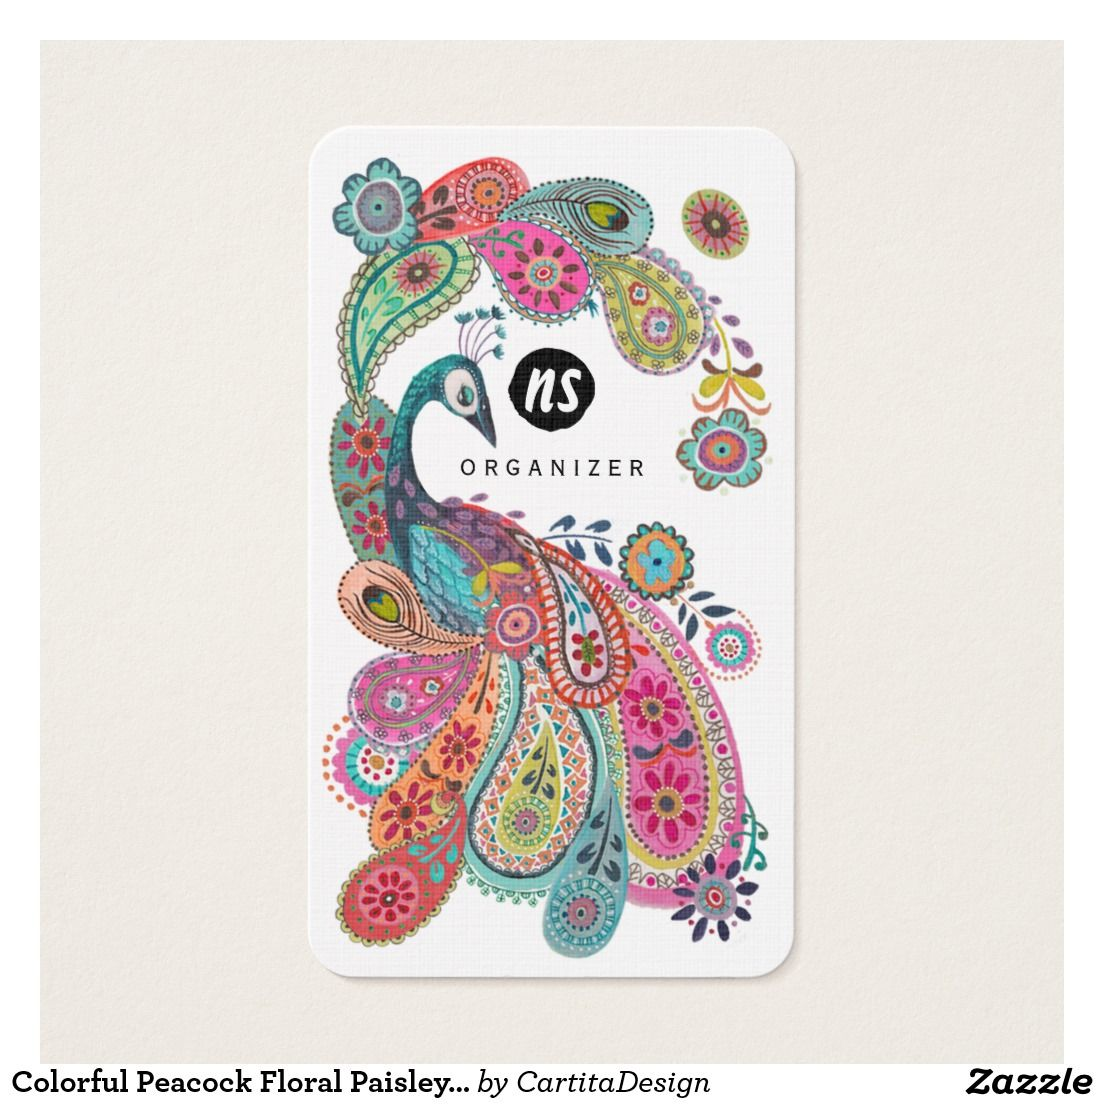 Colorful peacock floral paisley business cards business cards colorful peacock floral paisley business cards magicingreecefo Images